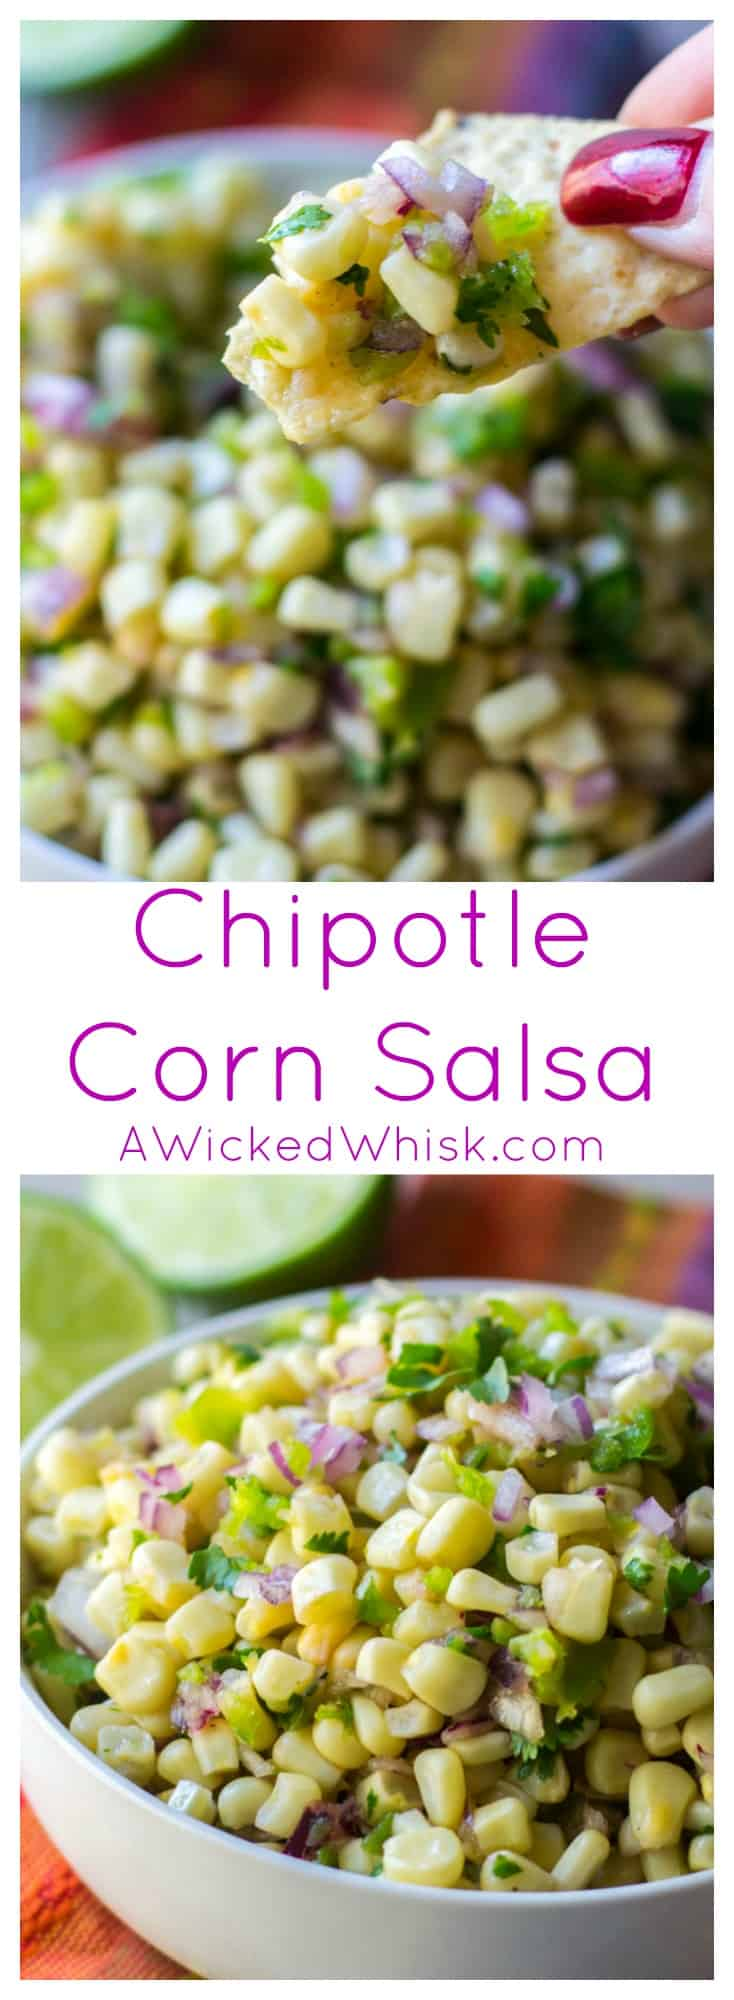 Chipotle Corn Salsa is the ultimate salsa of sweet, tangy and spicy! Combining fresh corn, spicy peppers and tangy lime juice, this Chipotle Corn Salsa recipe is the best salsa to add to any meal.   A Wicked Whisk   https://www.awickedwhisk.com #chipotlecopycatrecipes #chipotlefood #cornsalsa #roastedpeppercornsalsa #chipotlecornsalsa #chipotlecornsalsarecipe #salsa